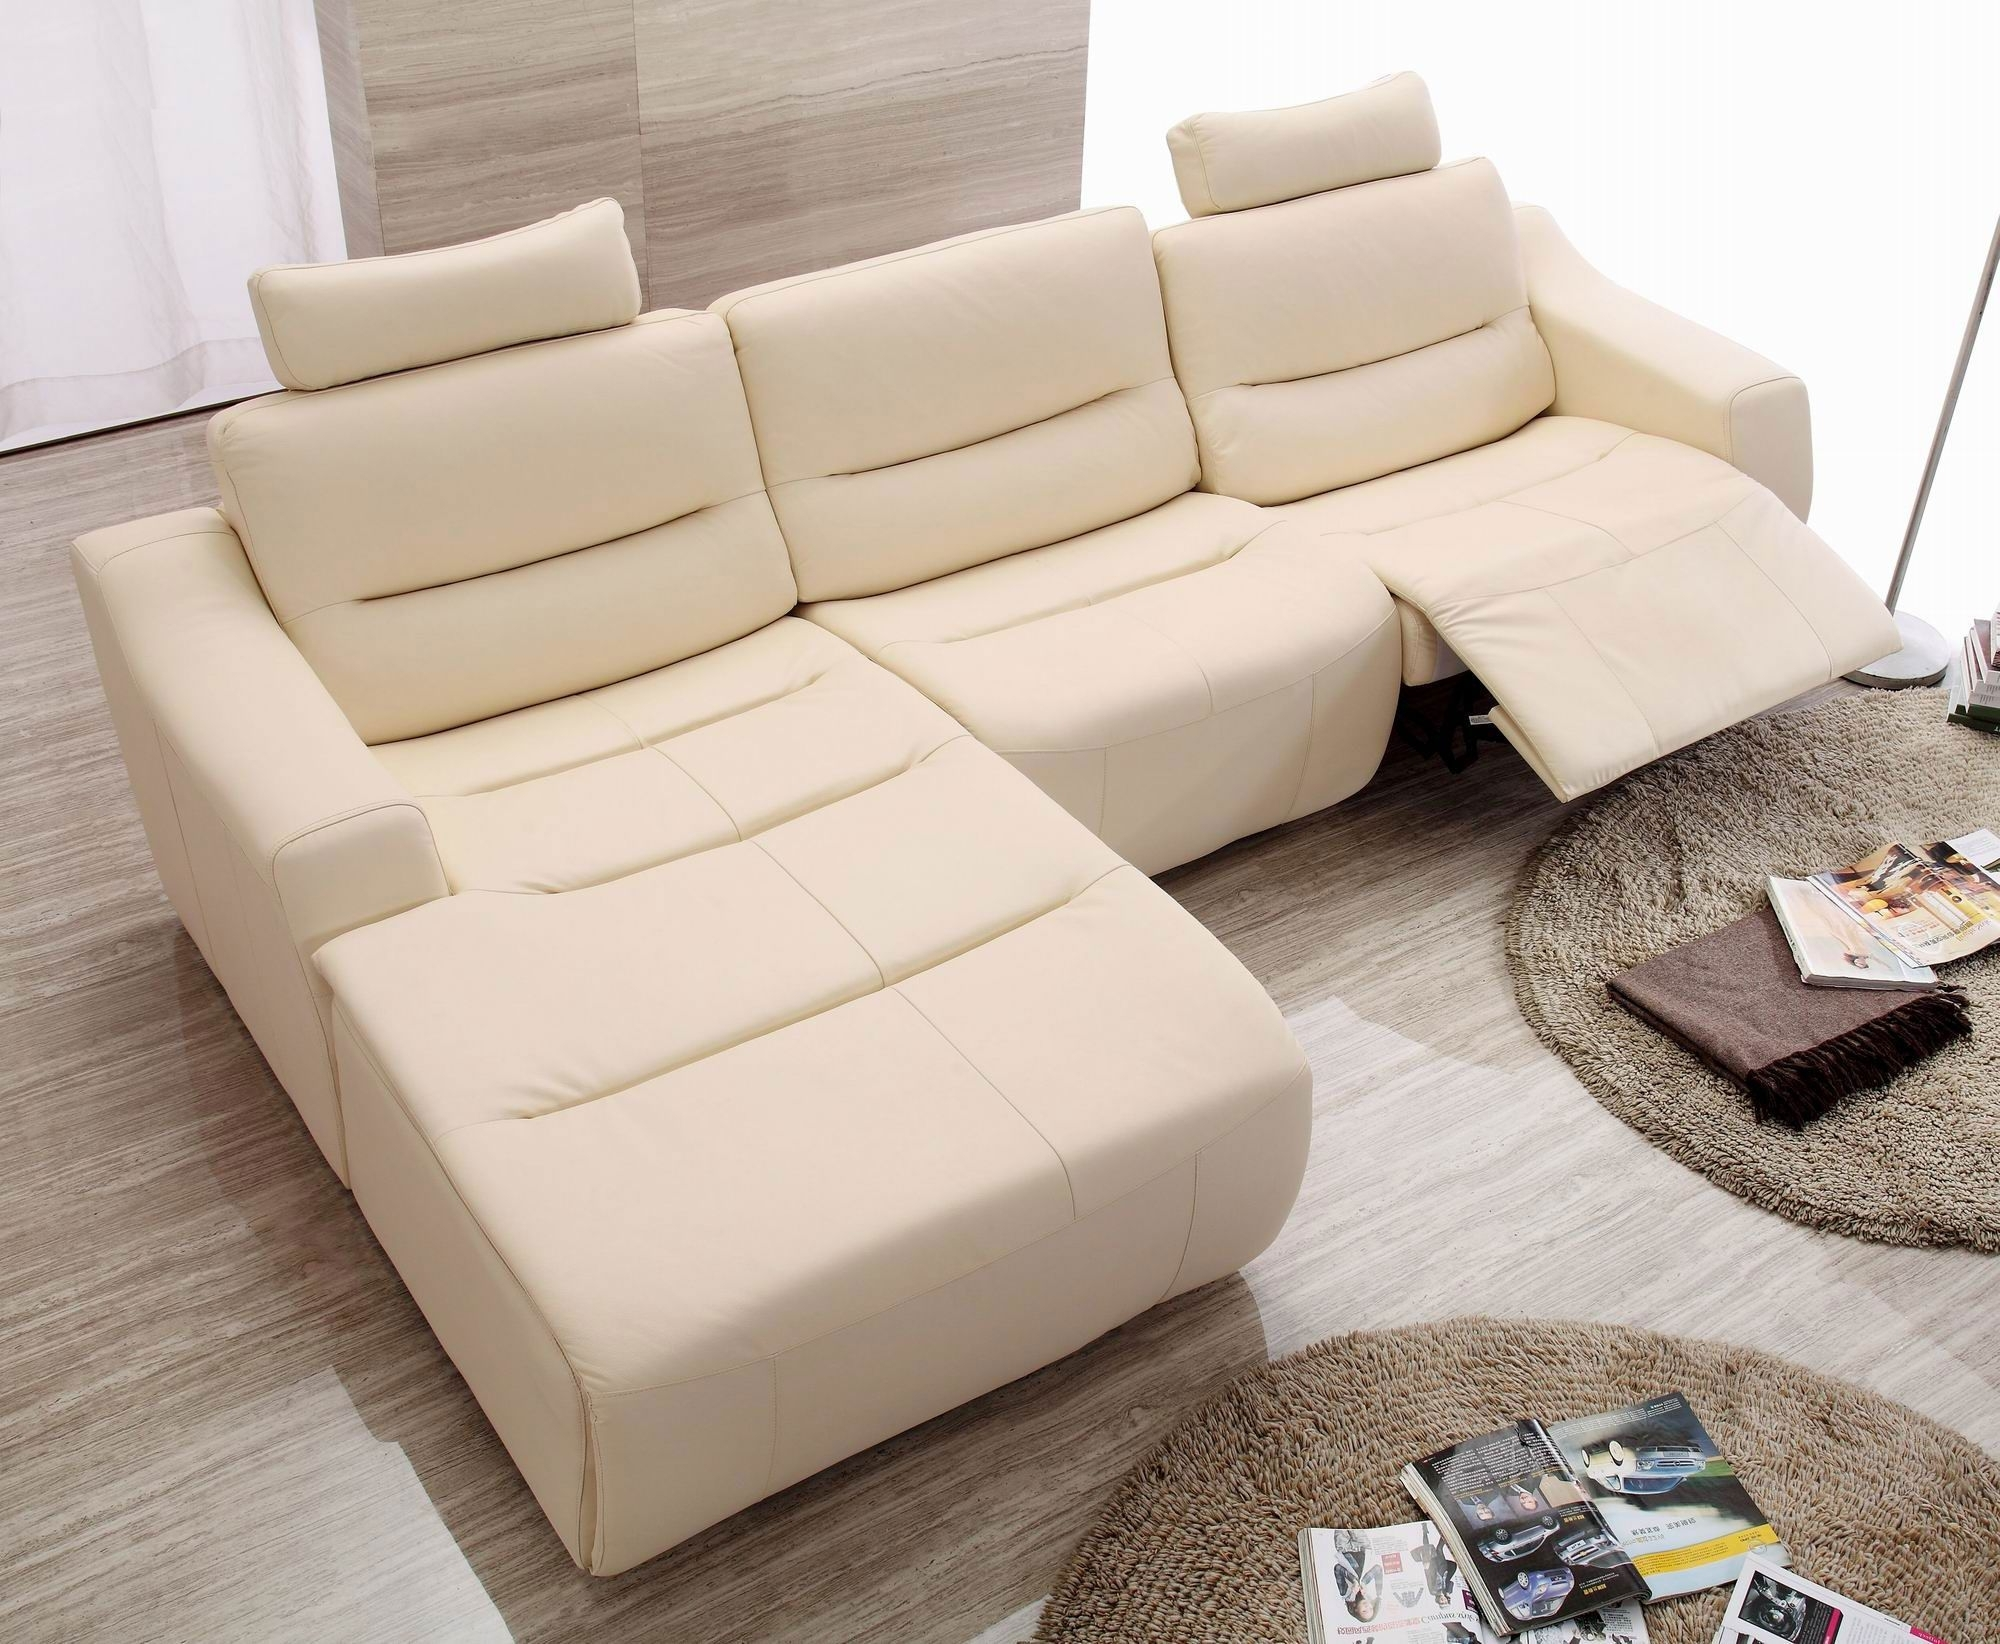 Most Current Sectional Sofas With Recliners For Small Spaces For White Or Beige Modern Contemporary Sofa With Chaise – Google (View 8 of 20)